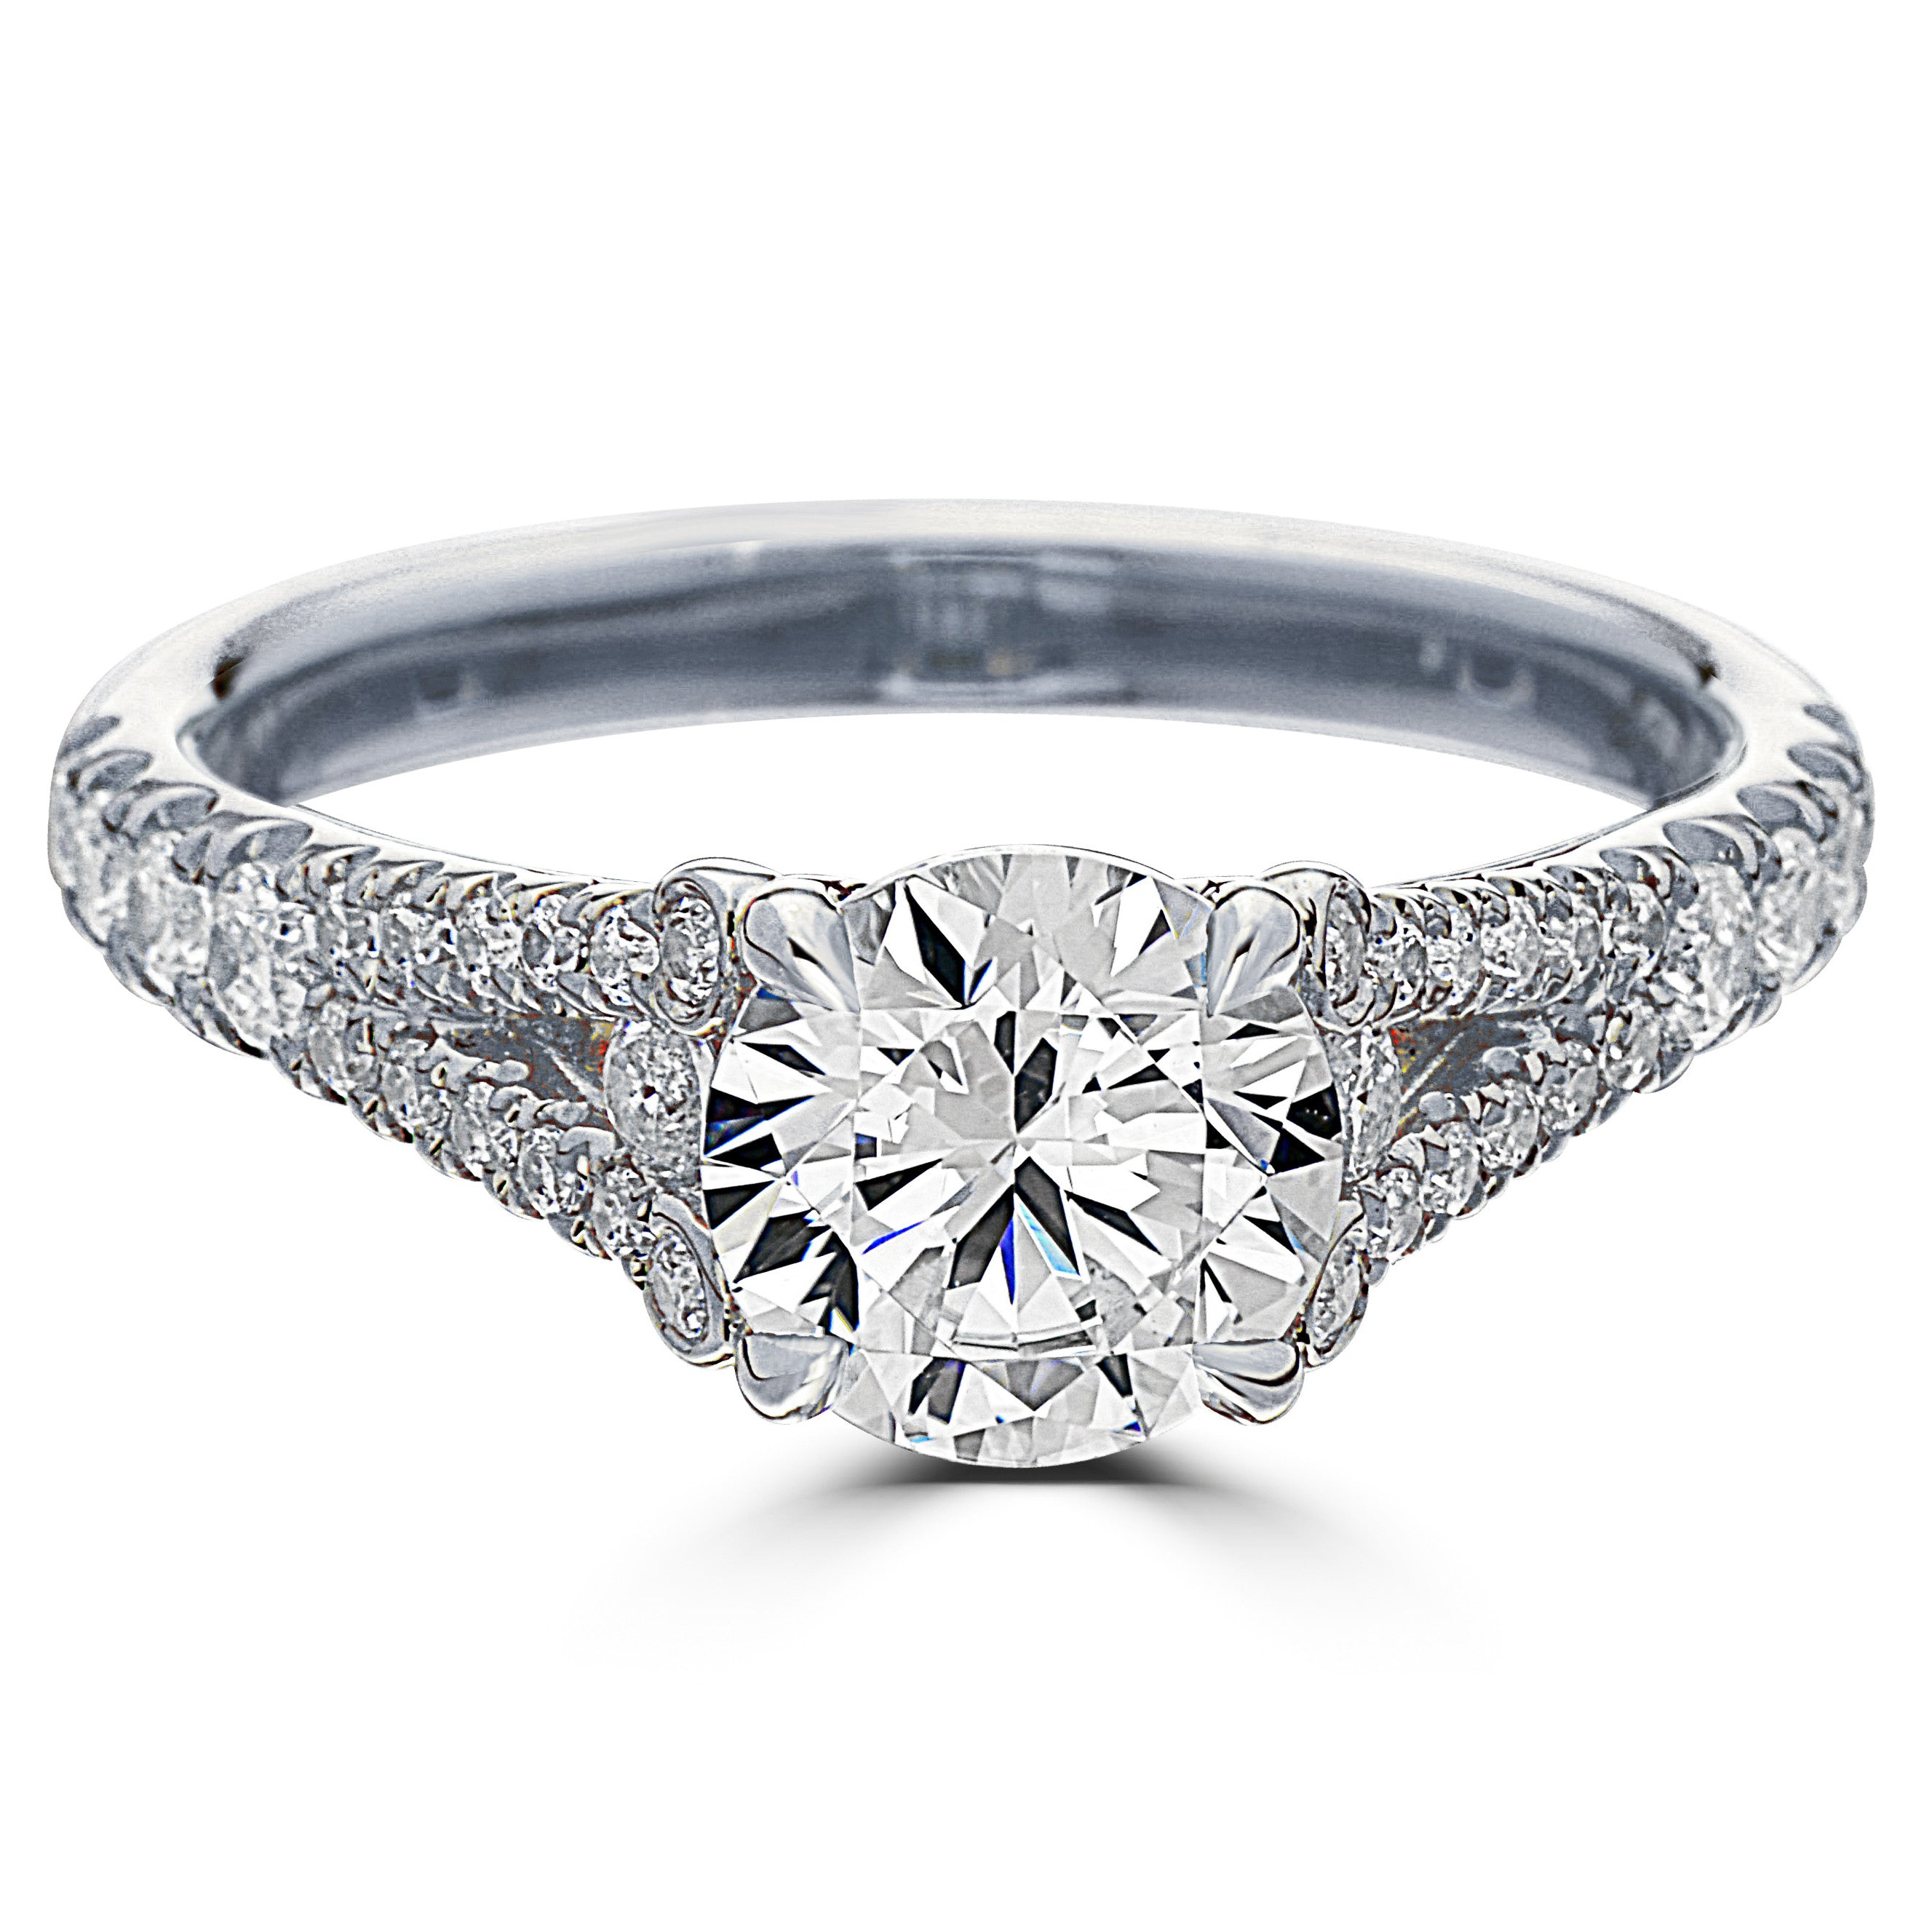 Point of Love Round Brilliant 1.5 Carat Diamond Split Shank Platinum  Engagement Ring 2ecb3cd39